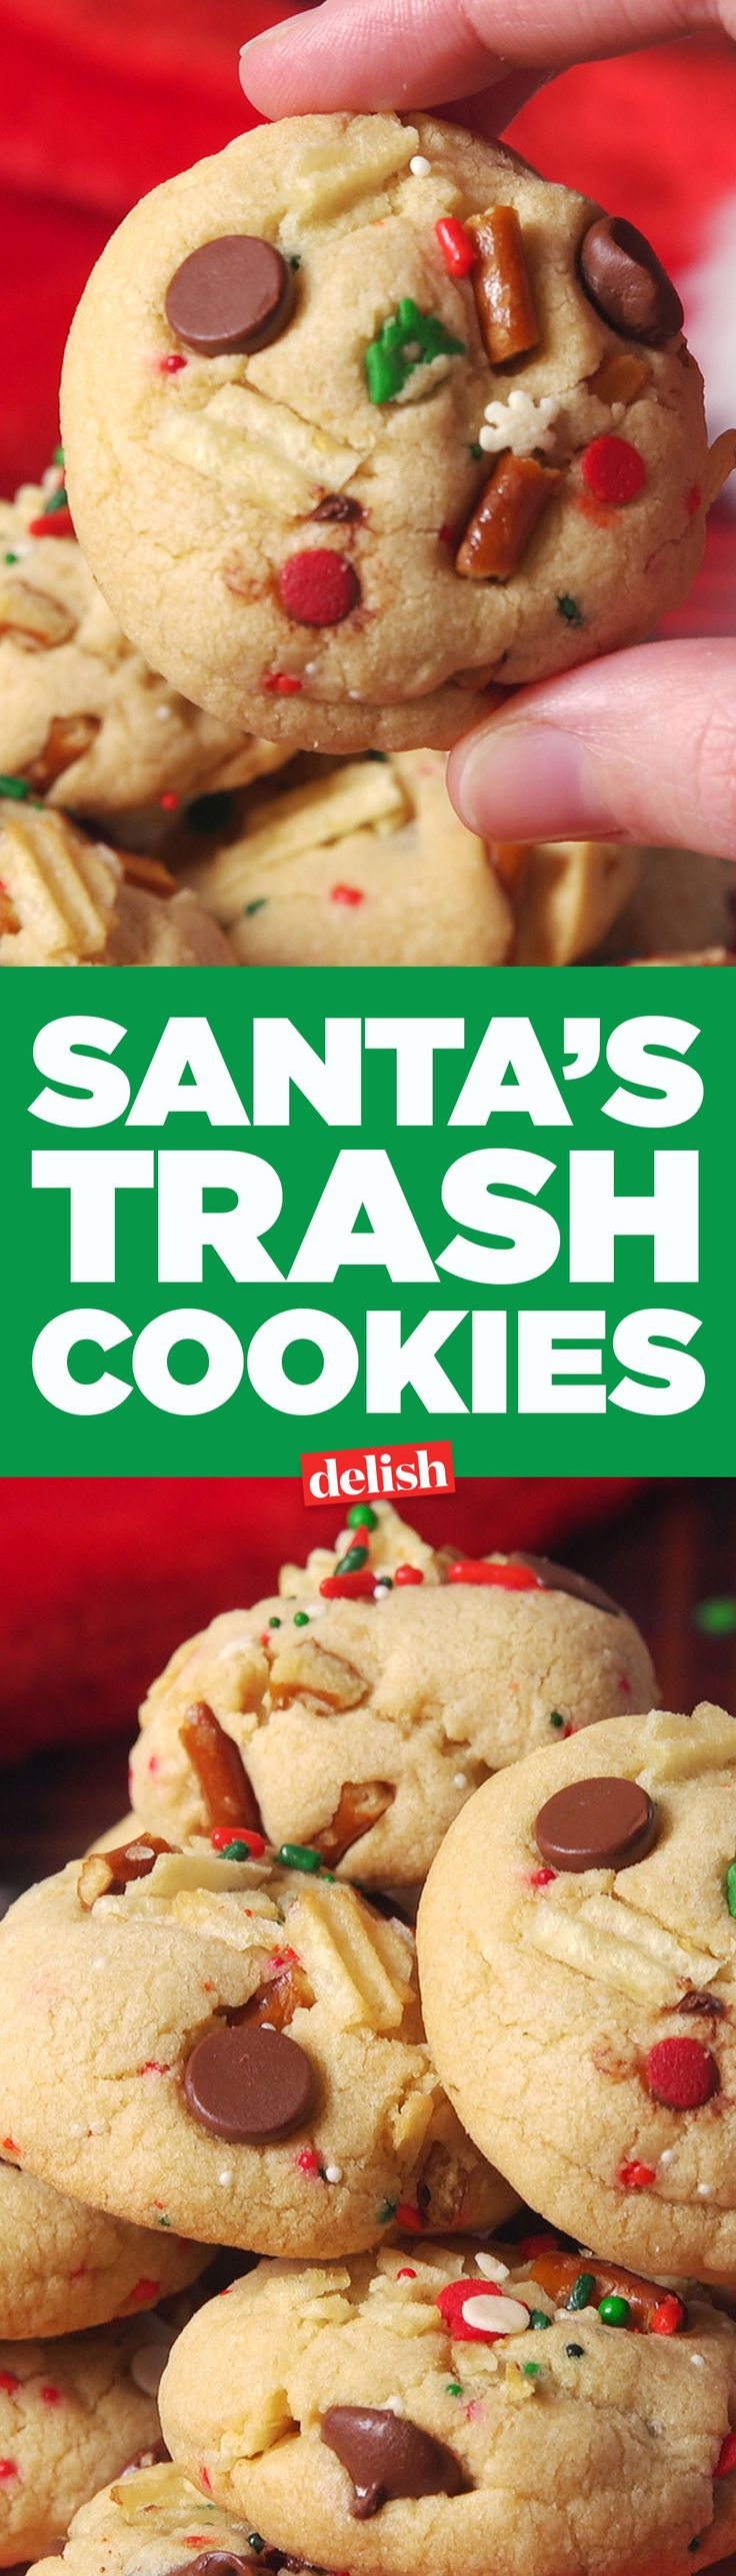 Santa's Trash Cookies are better than presents. Get the recipe from Delish.com.